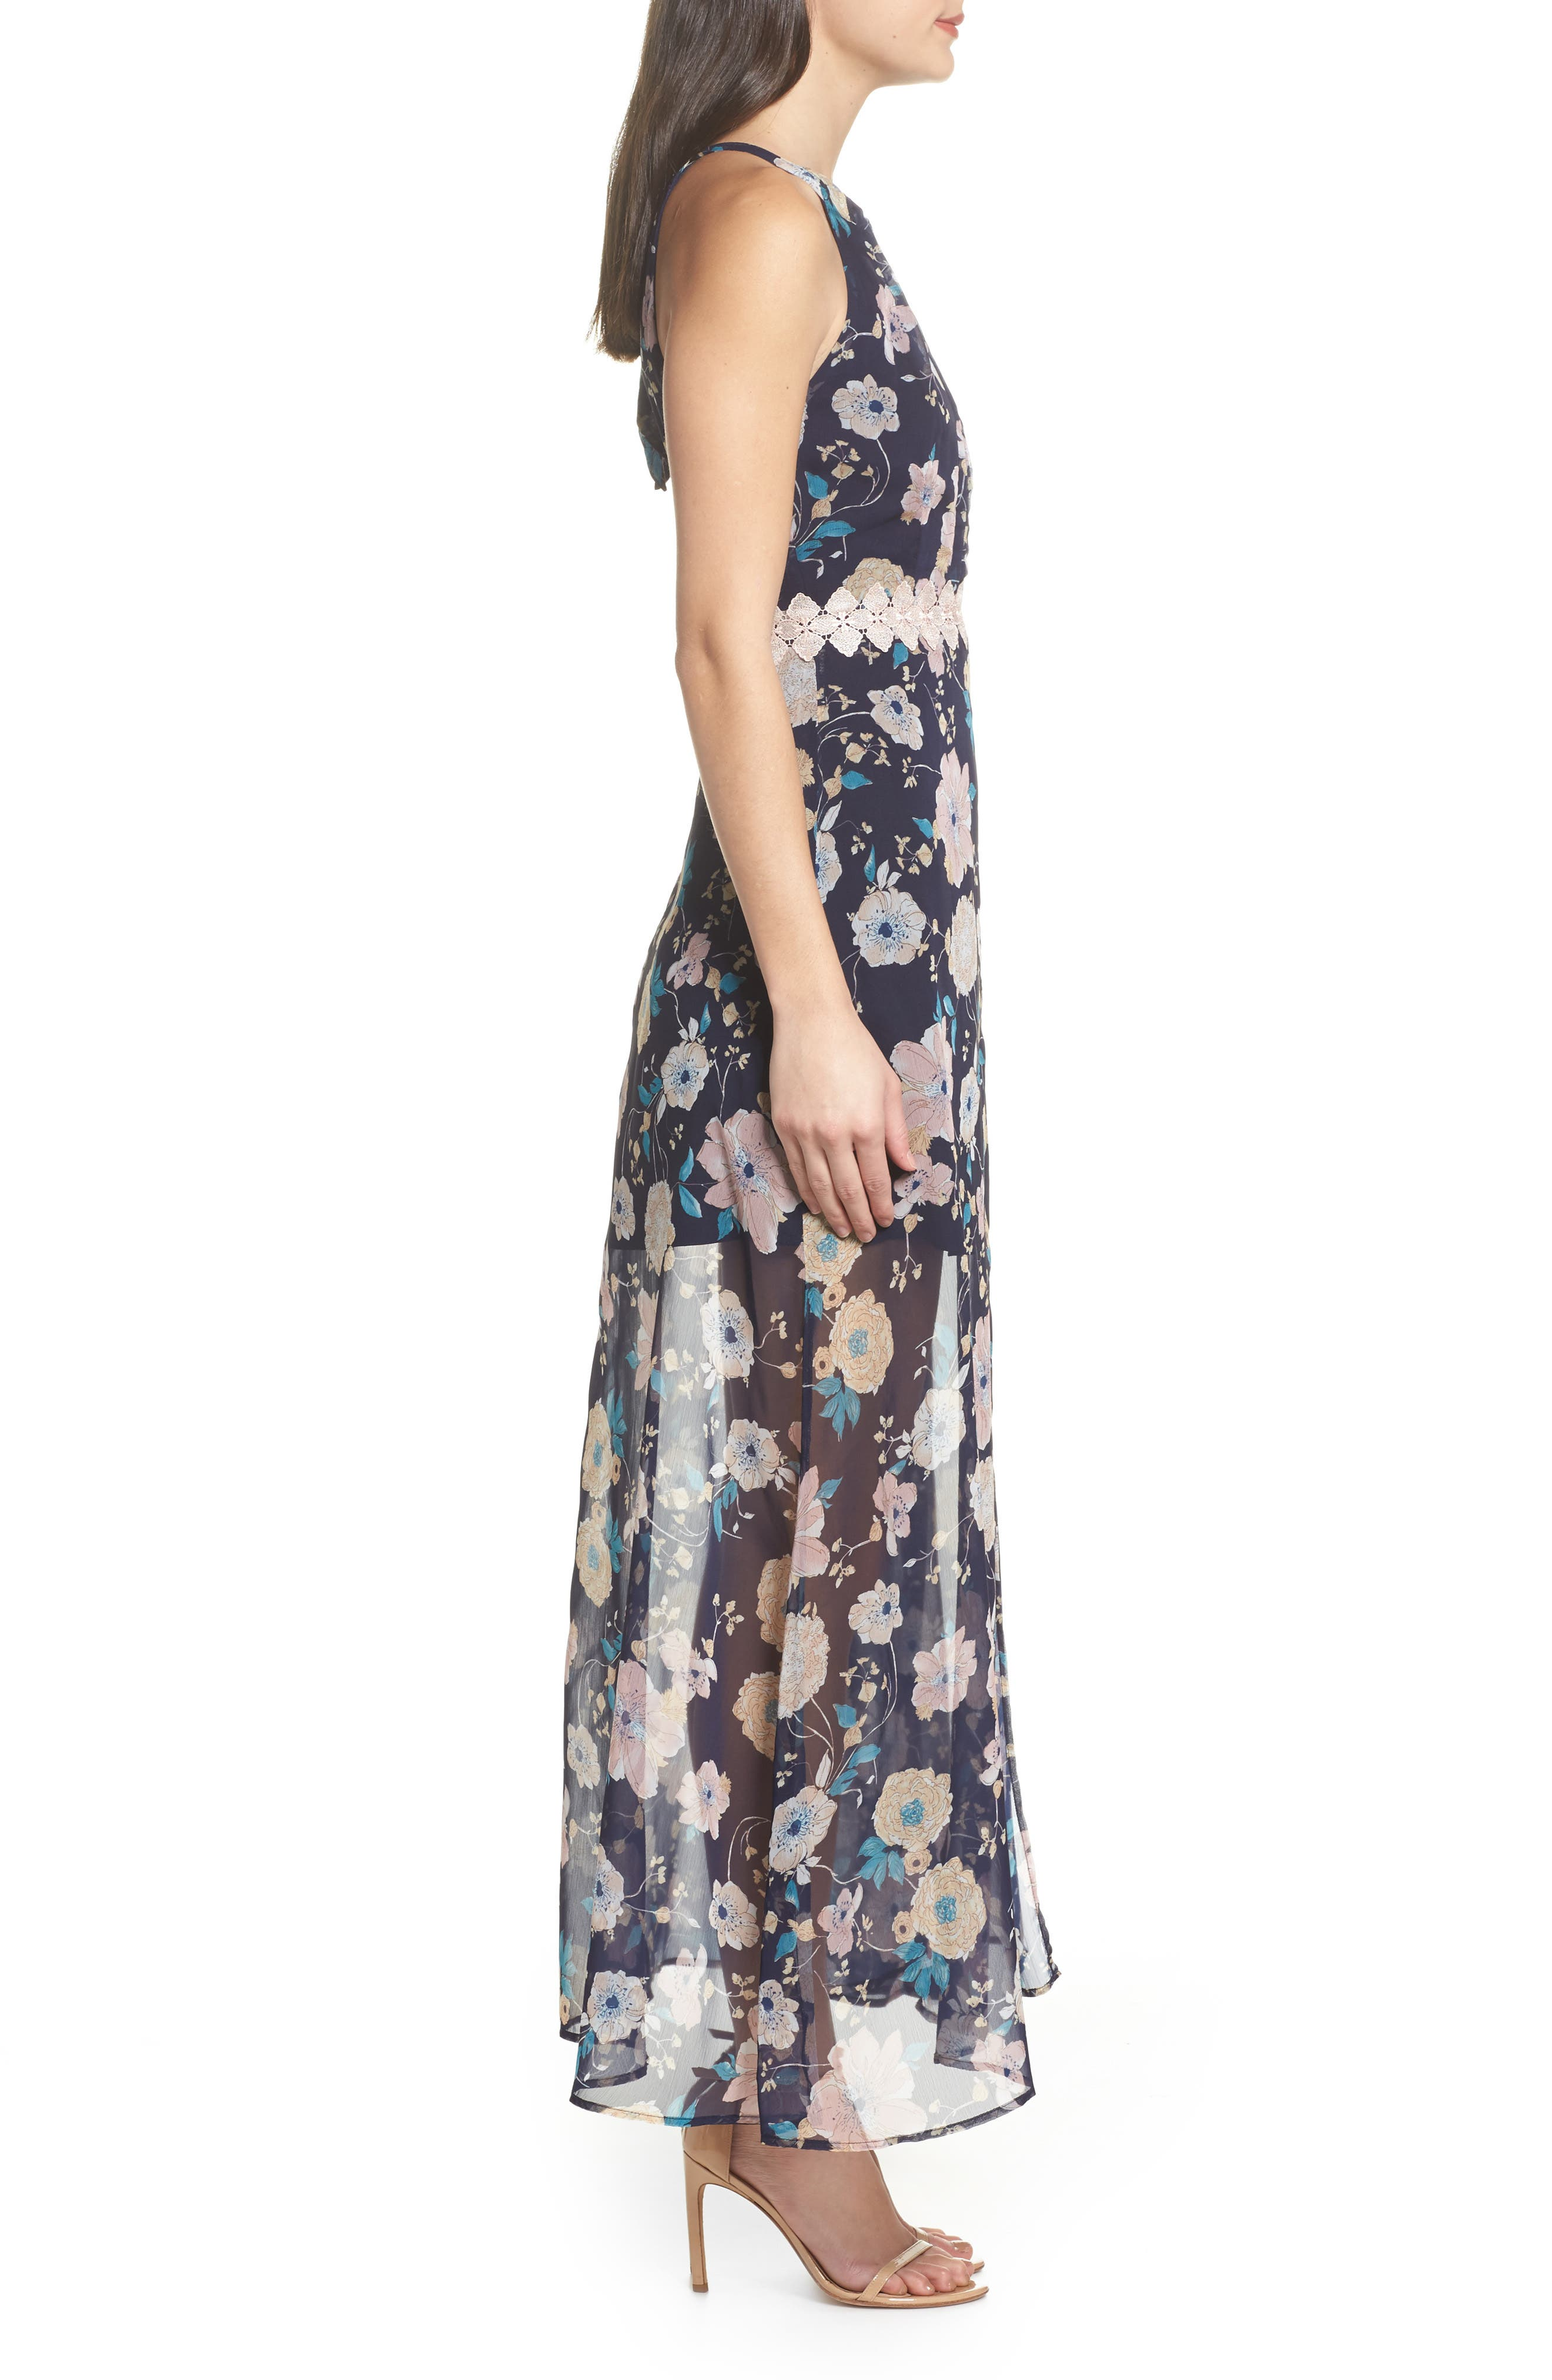 Brylee Floral Print Maxi Dress,                             Alternate thumbnail 3, color,                             Brylee Navy Multi